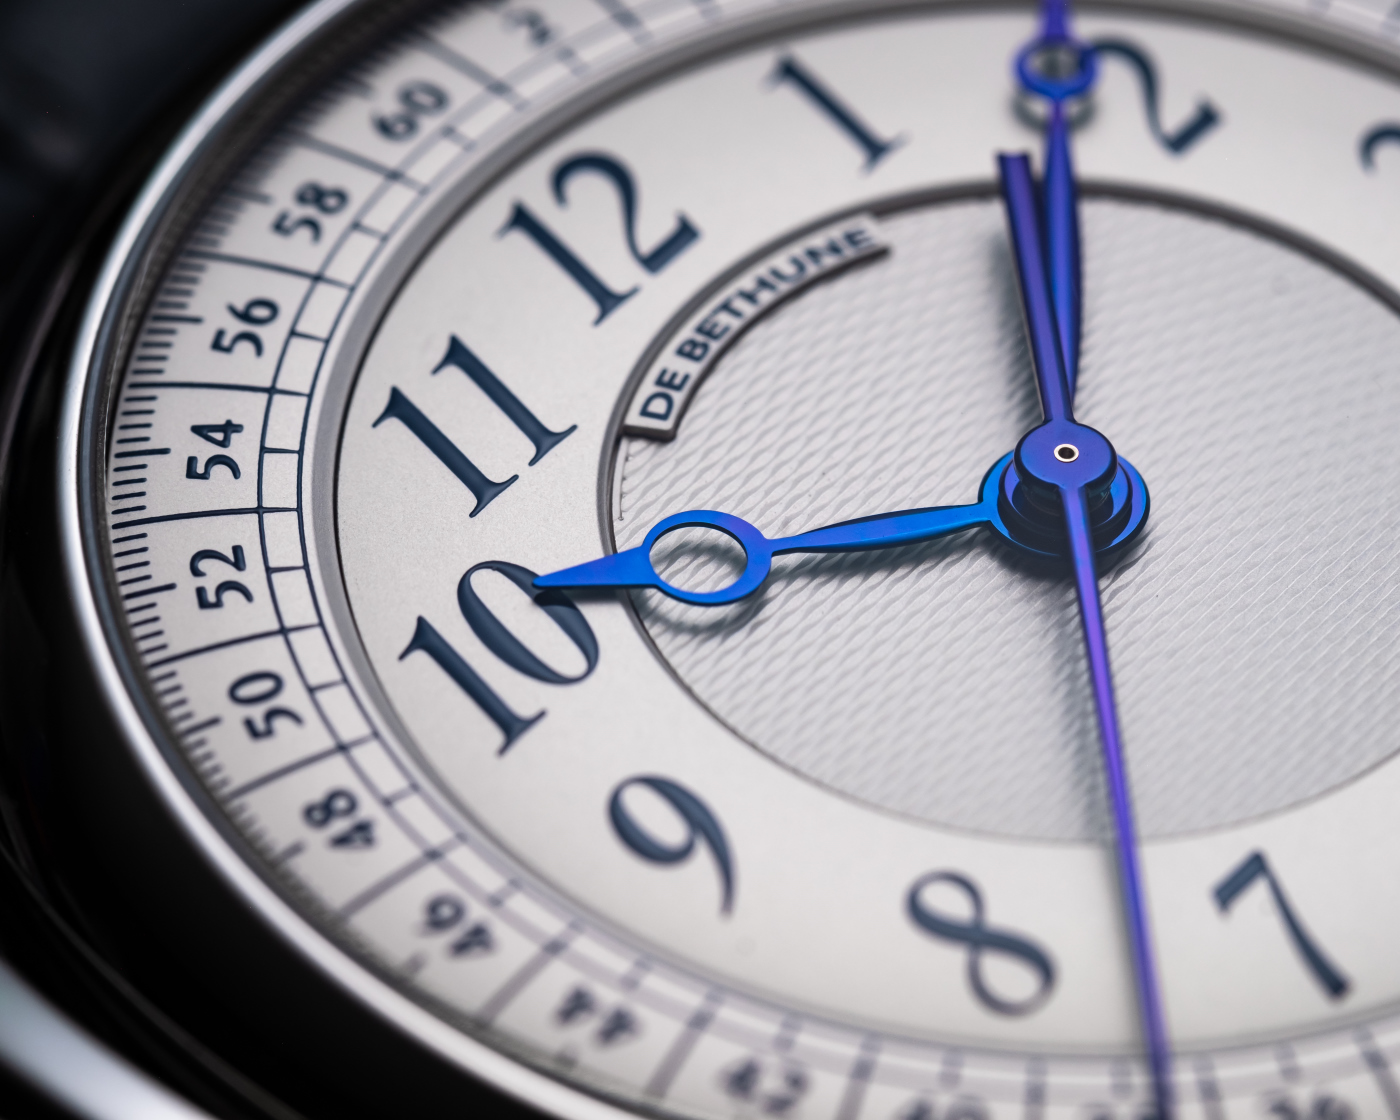 de_bethune_db_kind_of_two_8-_europa_star_watch_magazine_2021